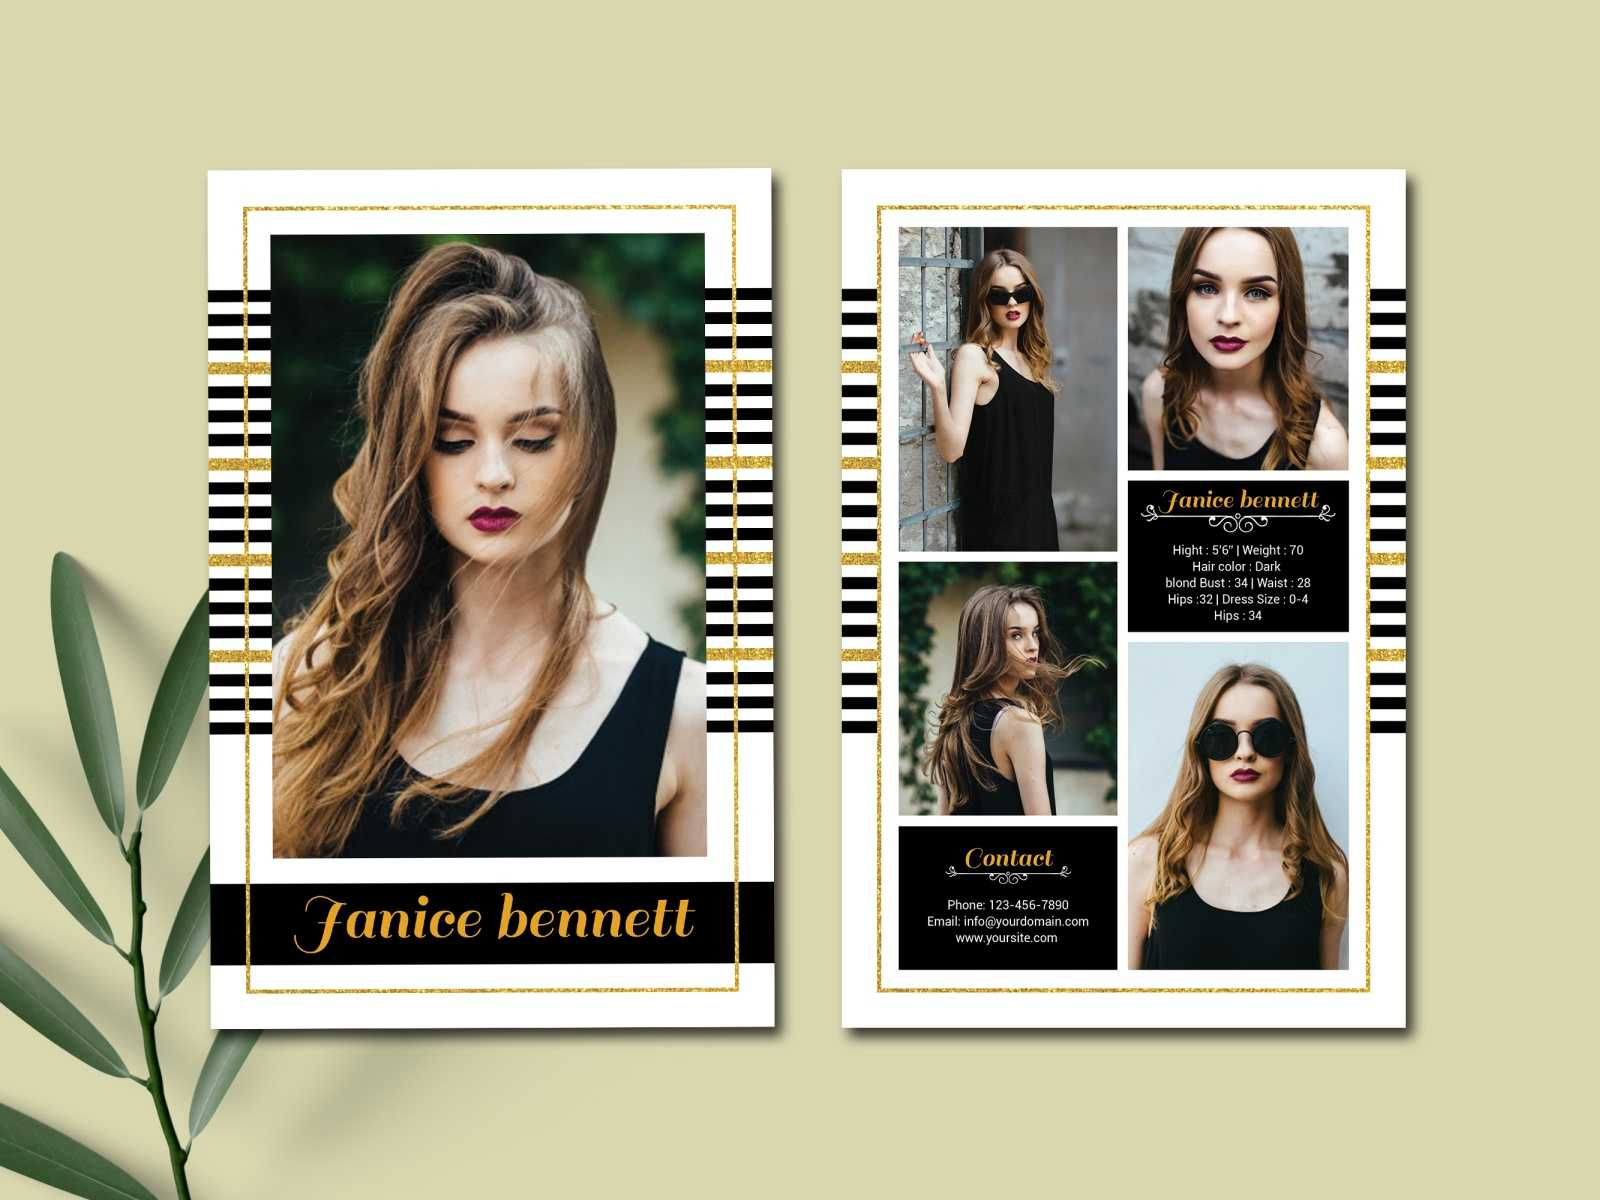 Model Comp Card Templateultimatetemplate On Dribbble Inside Comp Card Template Download